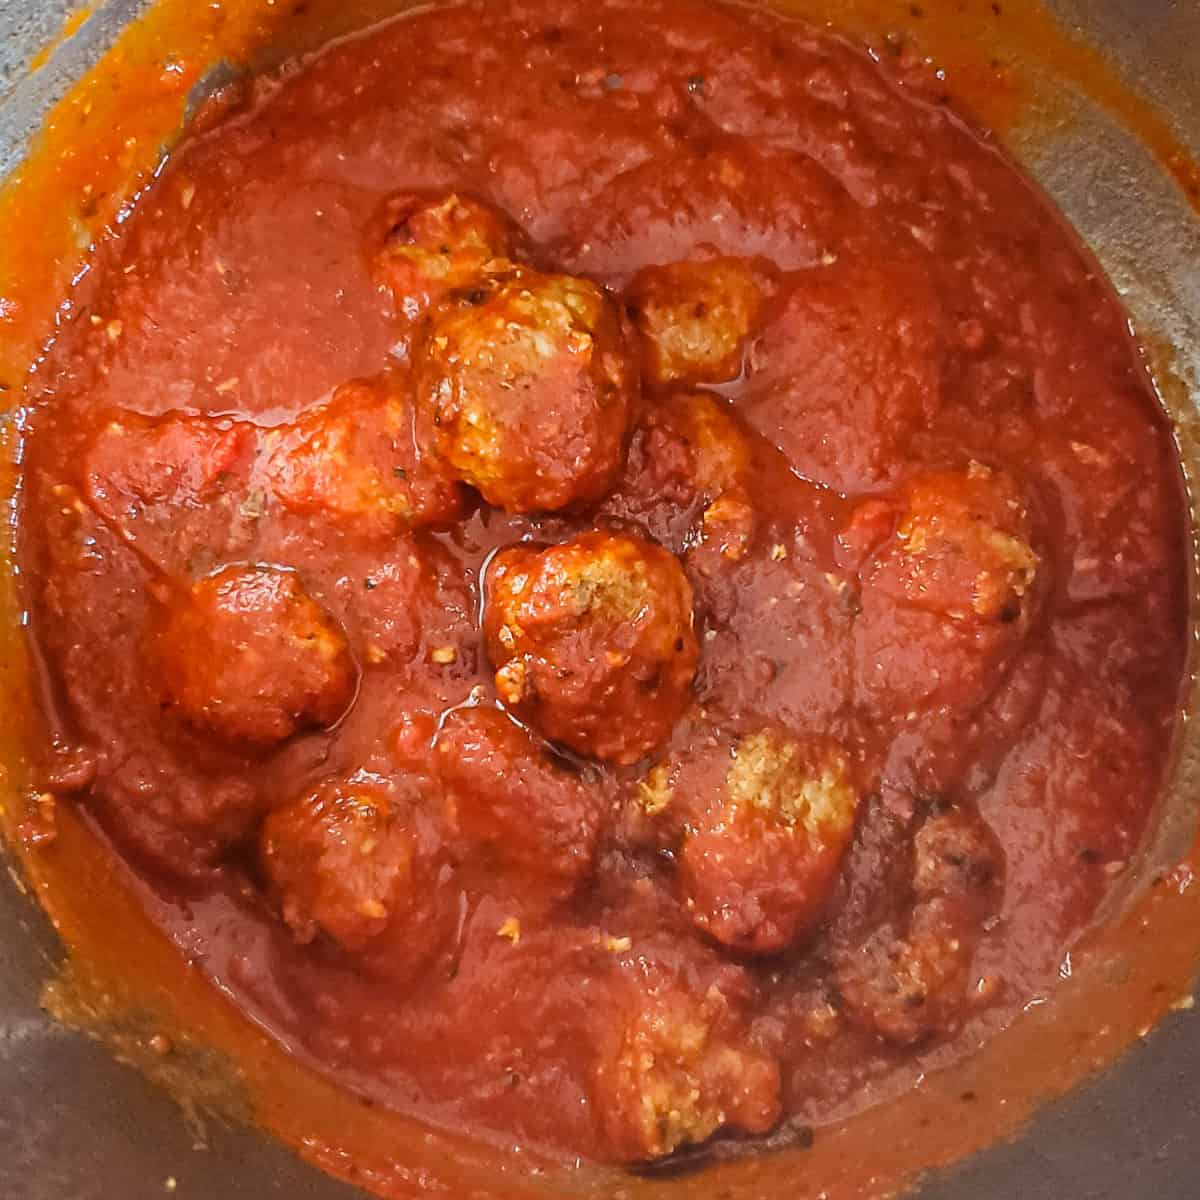 Meatballs and sauce shown in an Instant Pot prior to pressure cooking.